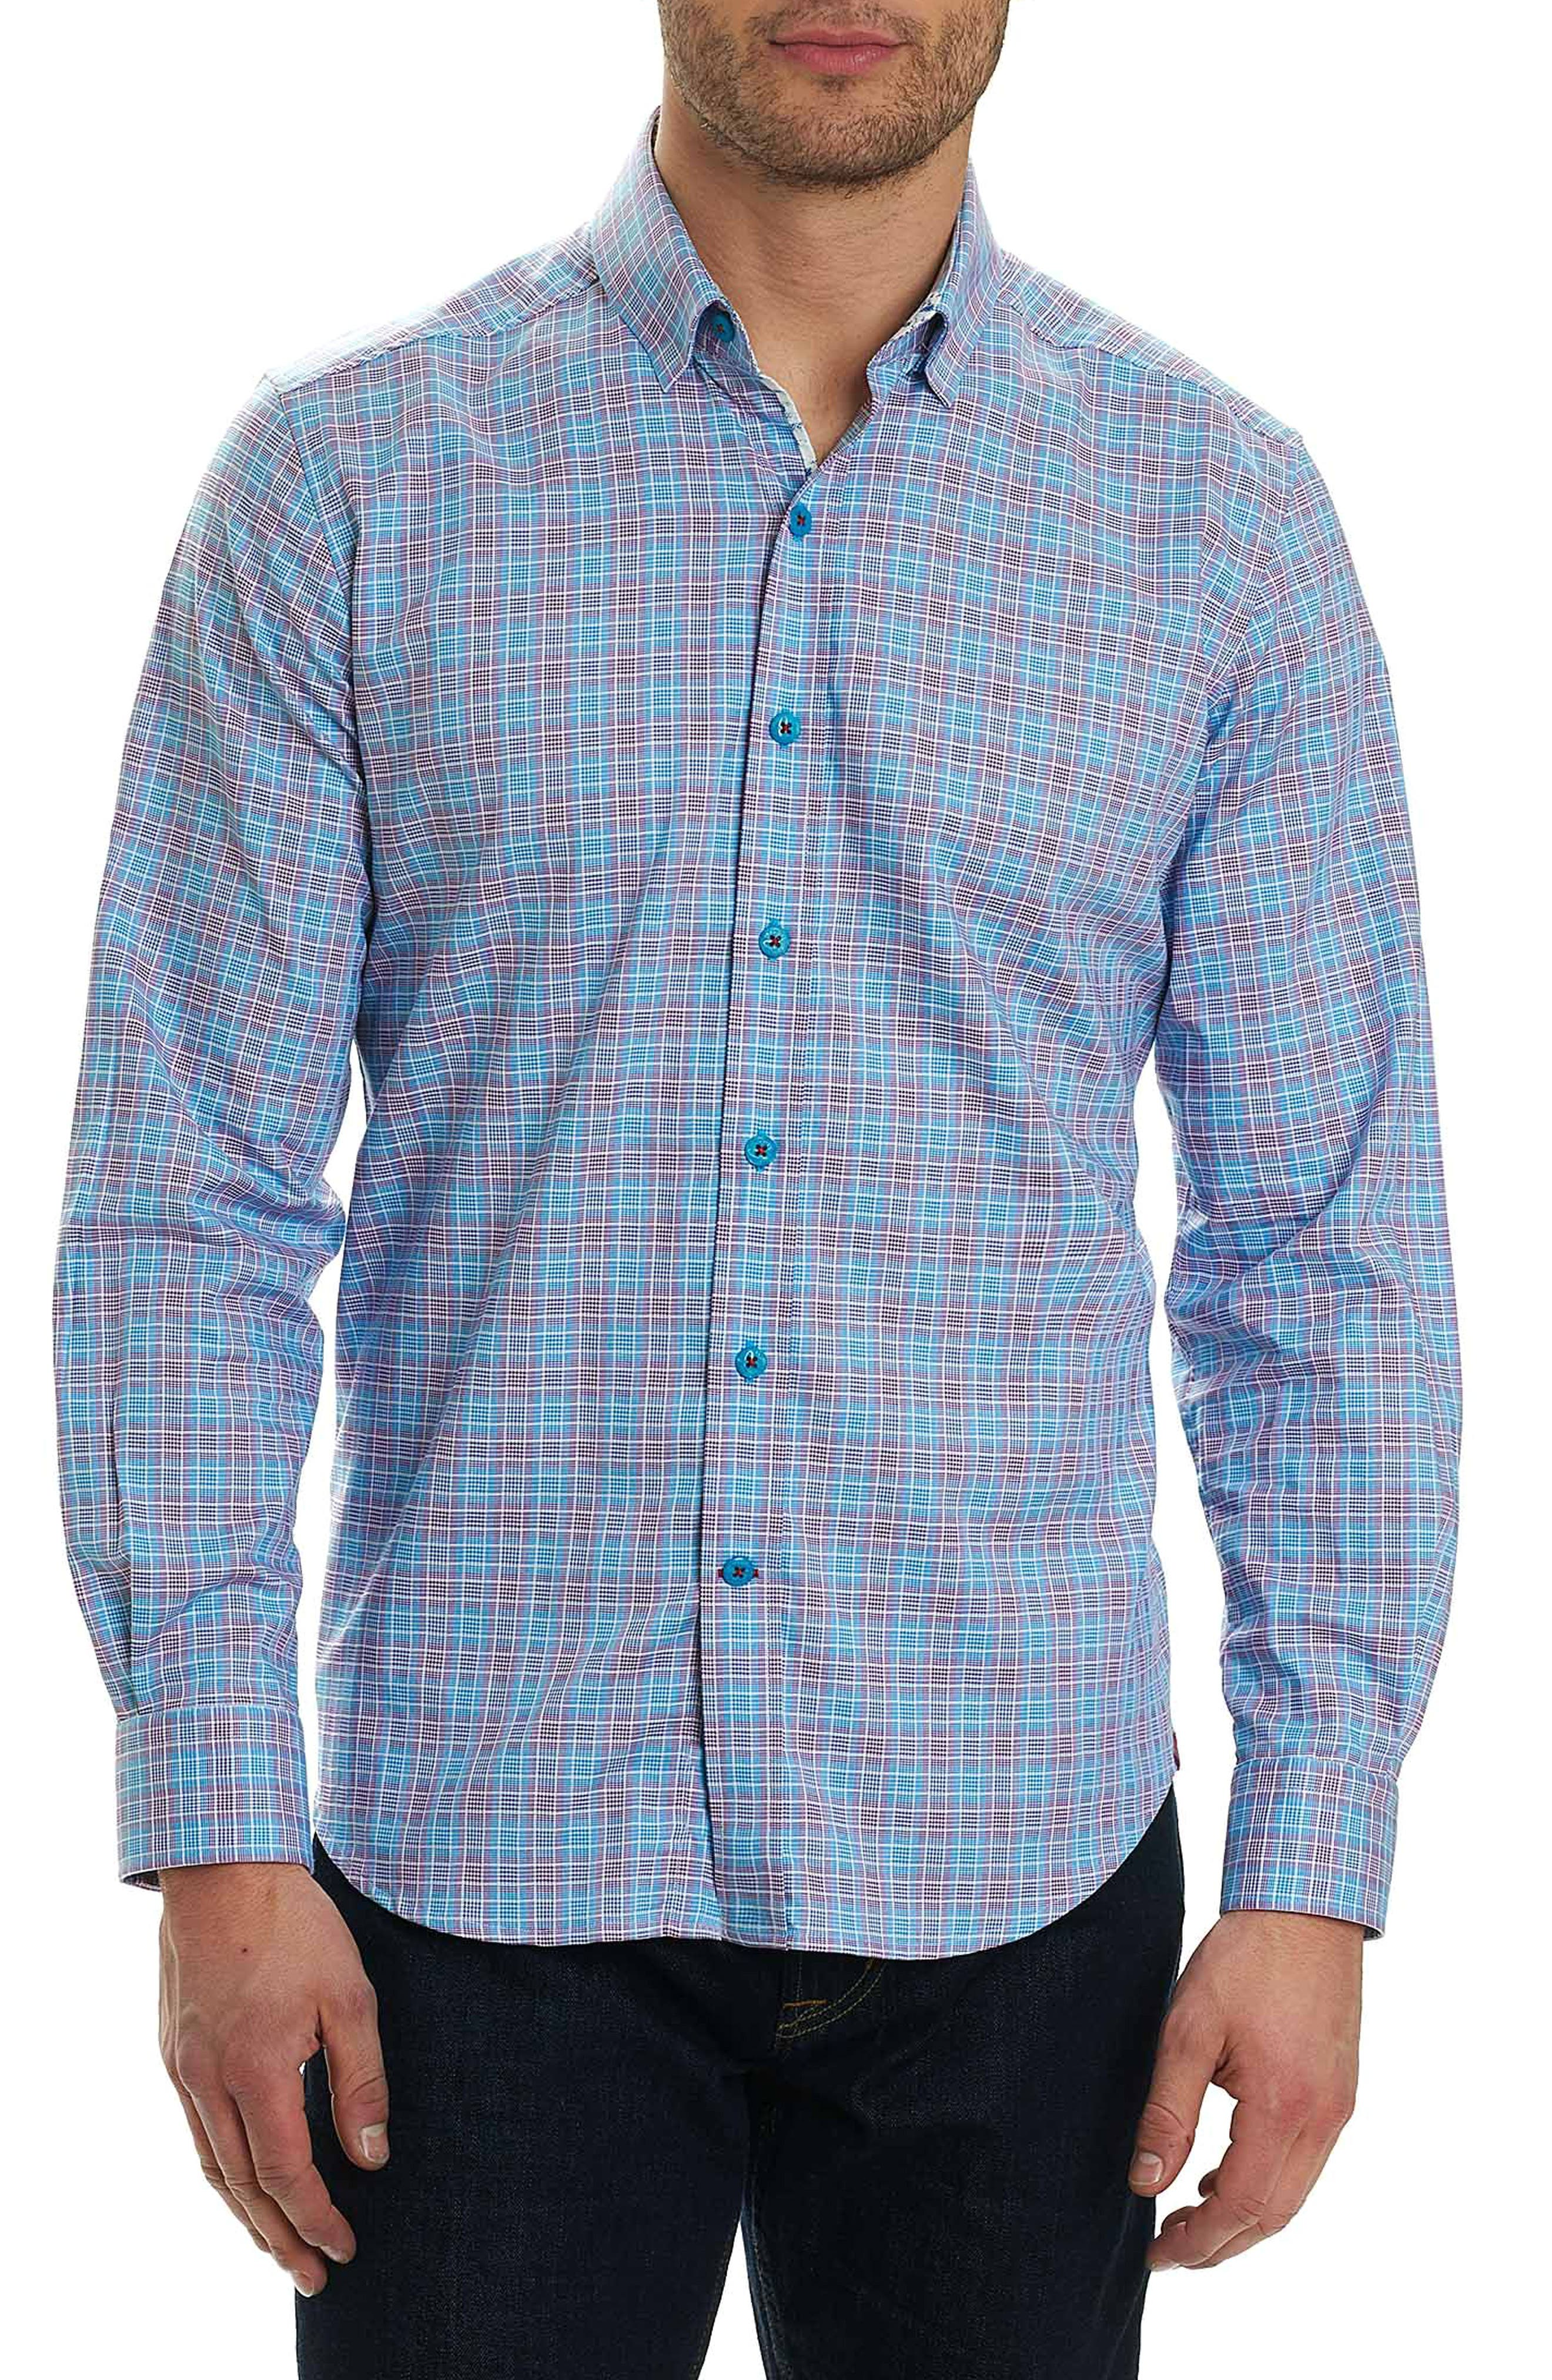 Main Image - Robert Graham Ryan Regular Fit Sport Shirt